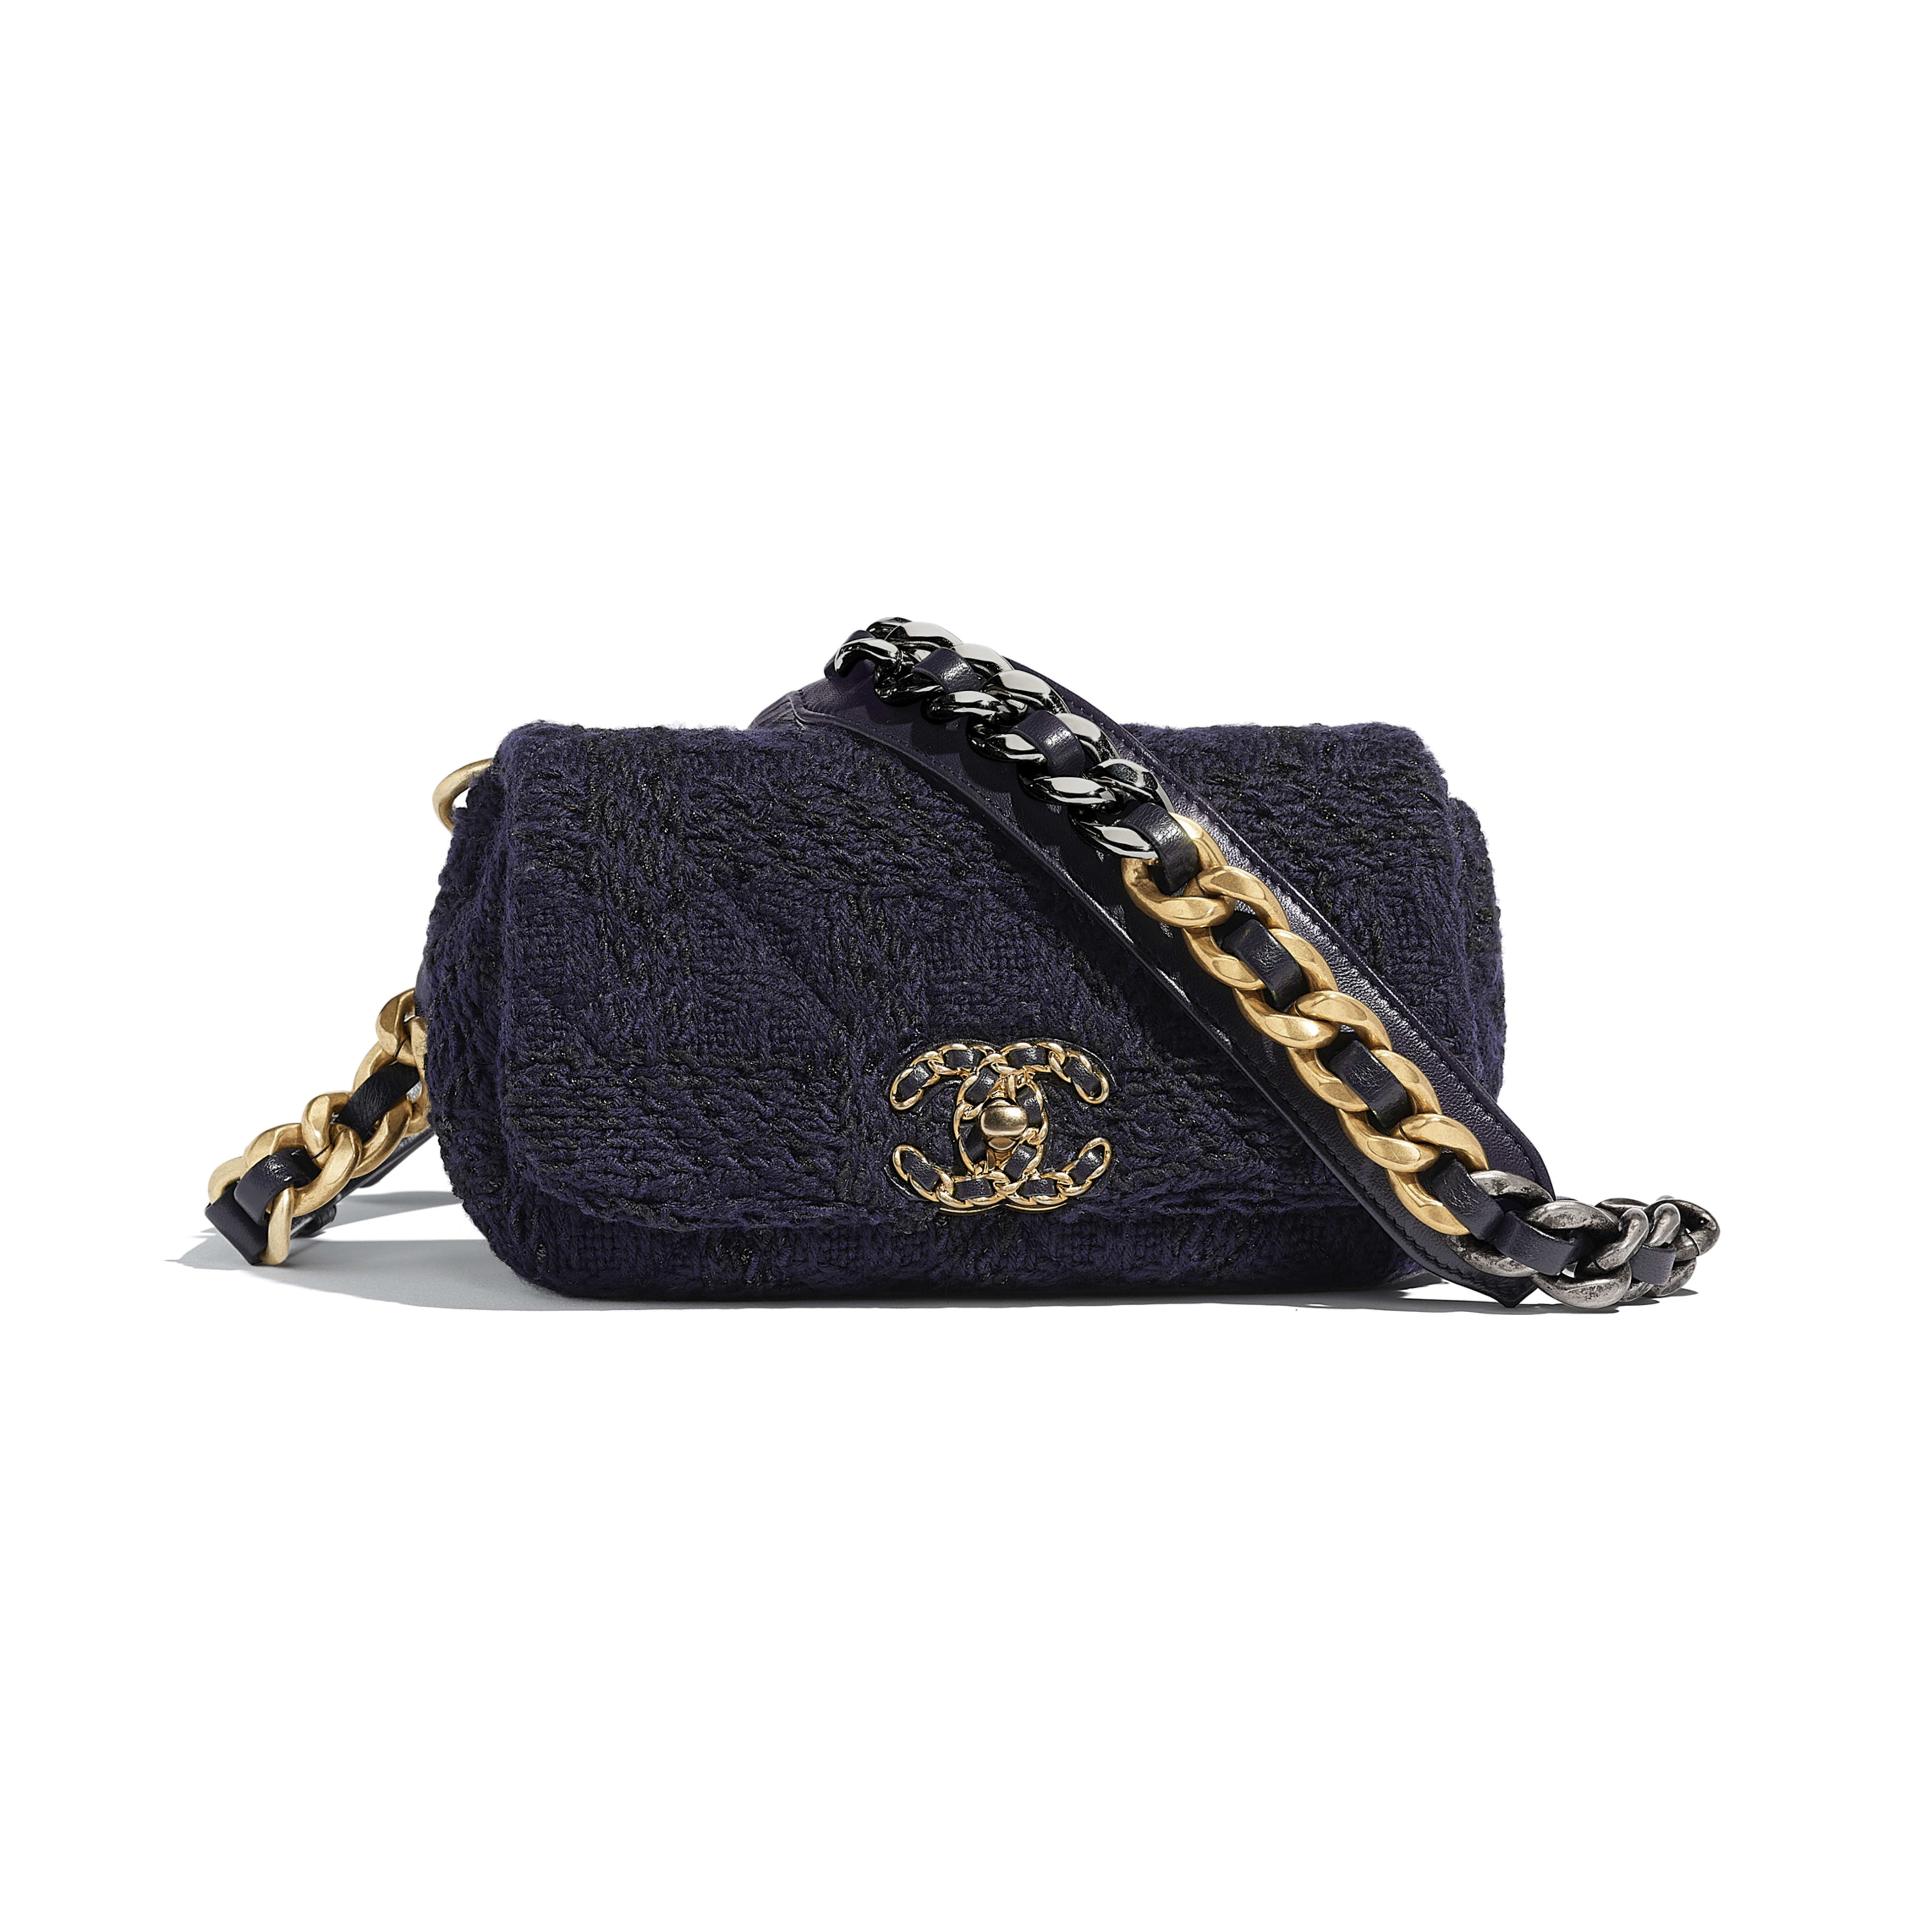 CHANEL 19 Waist Bag - Navy Blue & Black - Wool Tweed, Gold-Tone, Silver-Tone & Ruthenium-Finish Metal - Default view - see full sized version